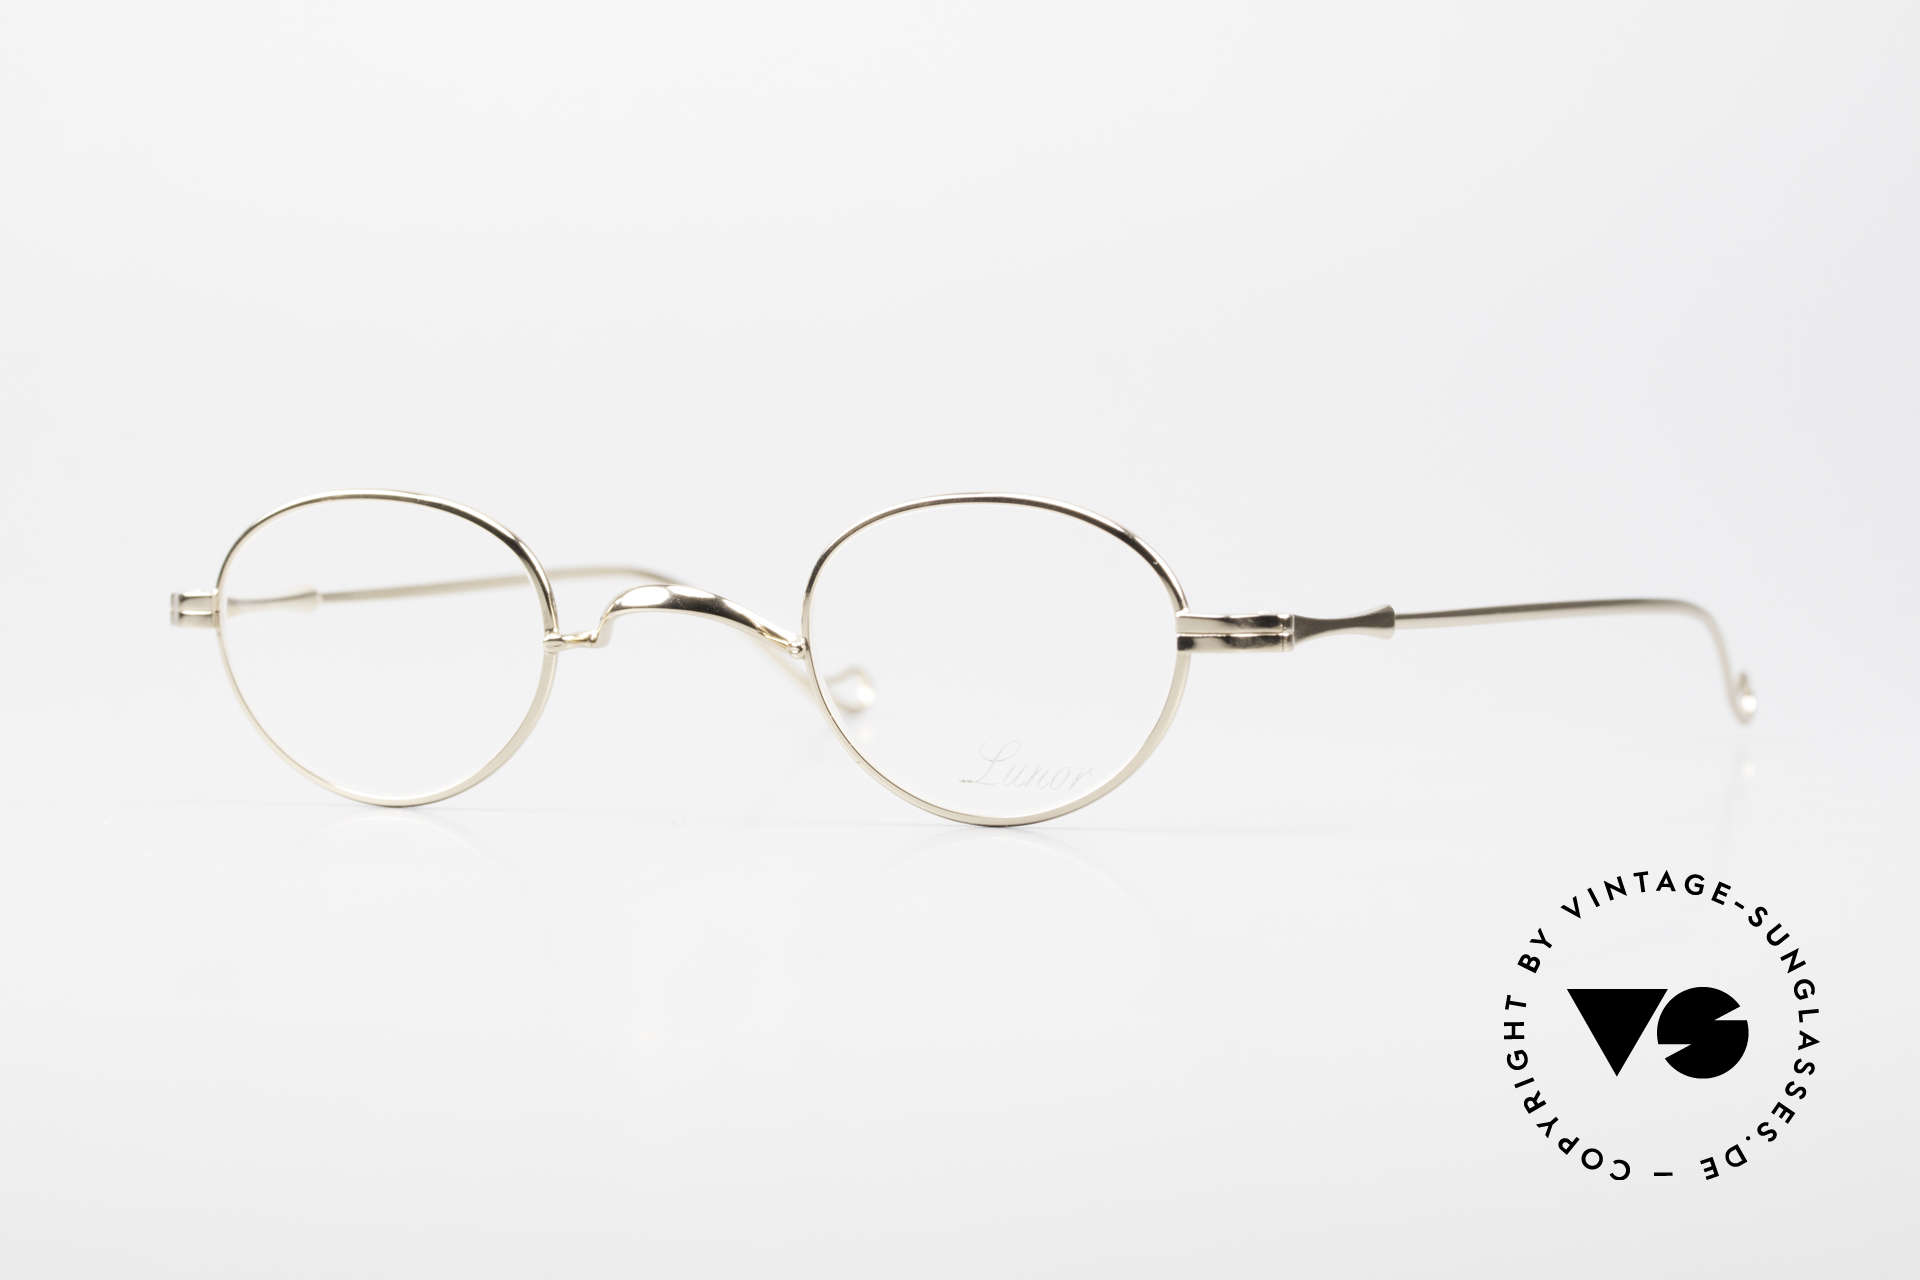 Lunor II 03 XS Unisex Frame Gold Plated, extra small vintage eyeglasses of the Lunor II Series, Made for Men and Women